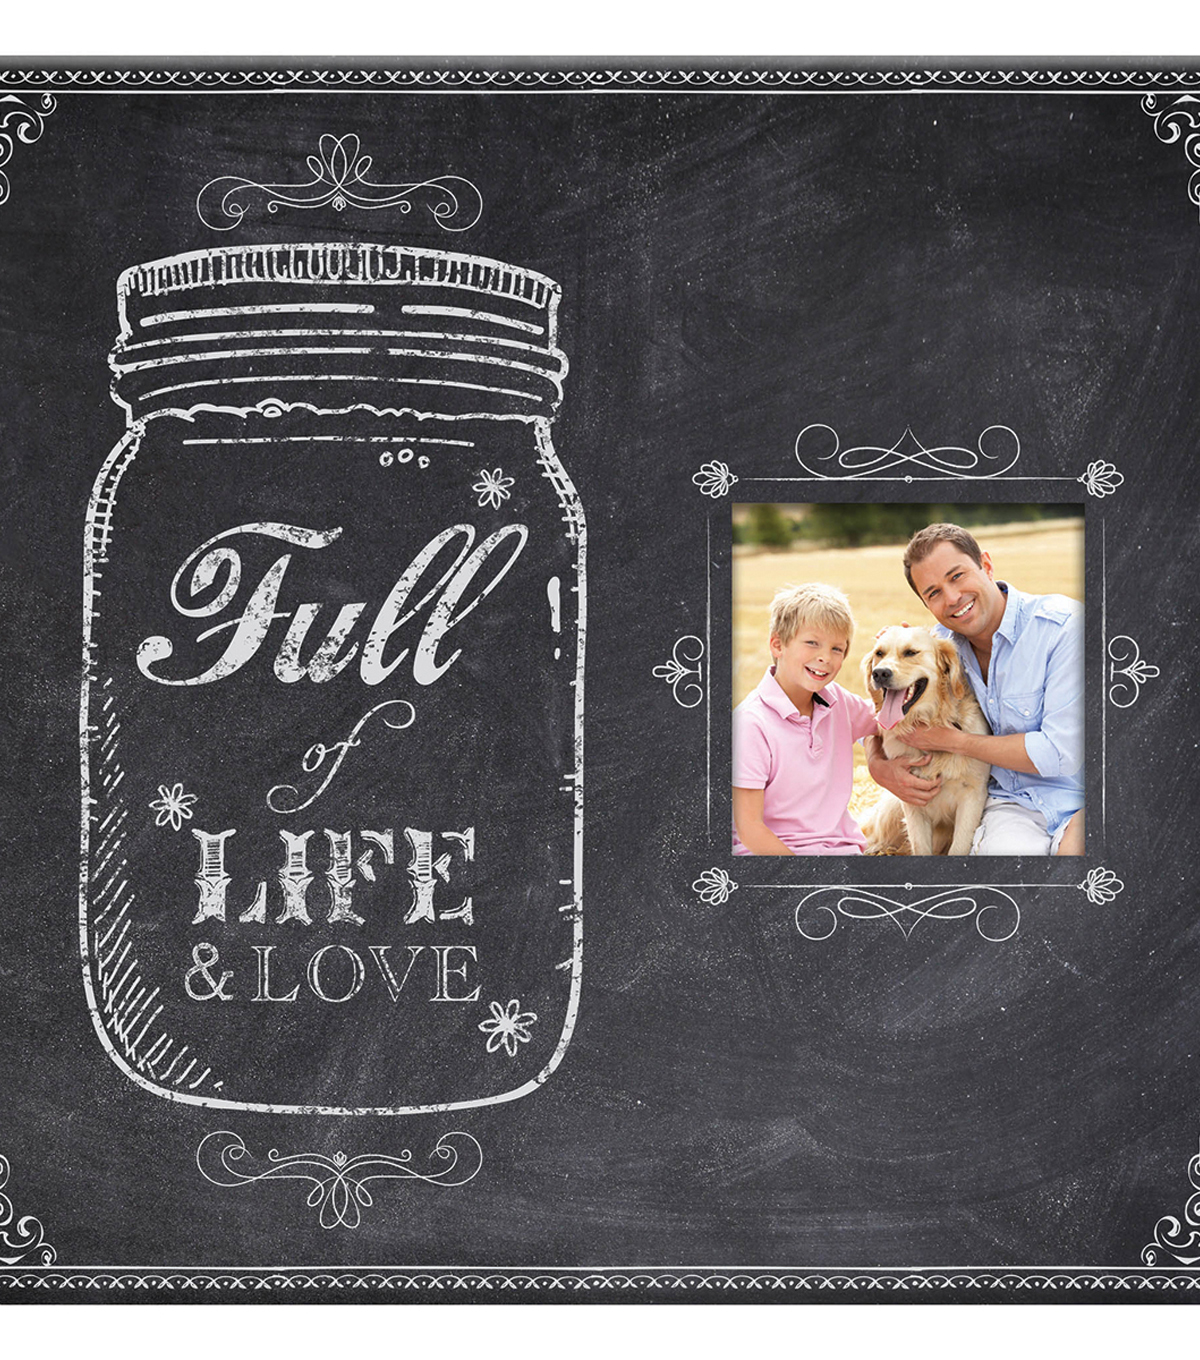 MBI 12\u0027\u0027x12\u0027\u0027 Post Bound Album with Window-Mason Jar & Full of Life